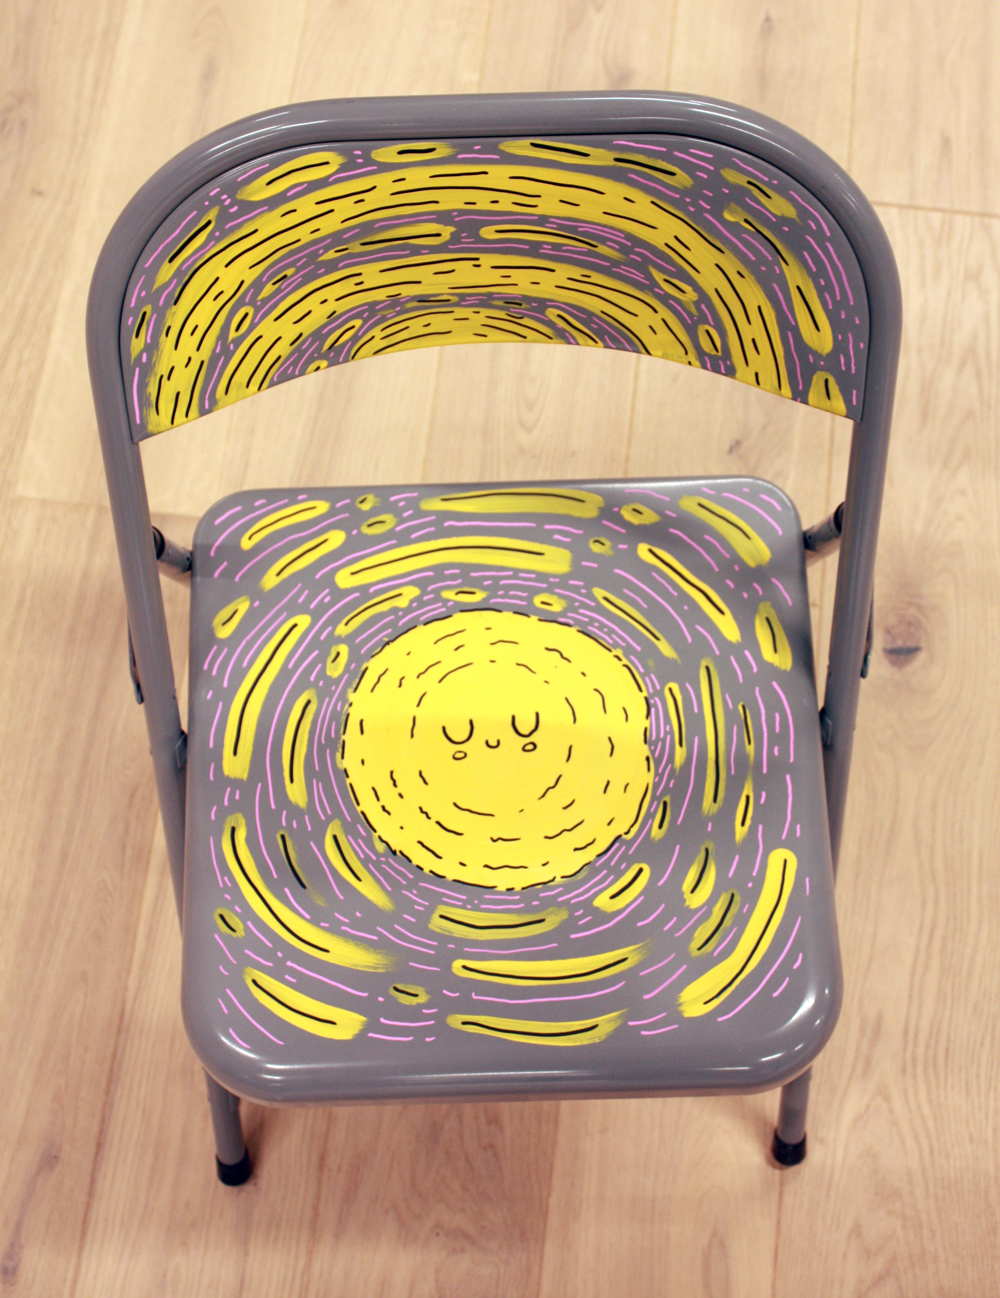 doodle, sun, yellow, painting, chair